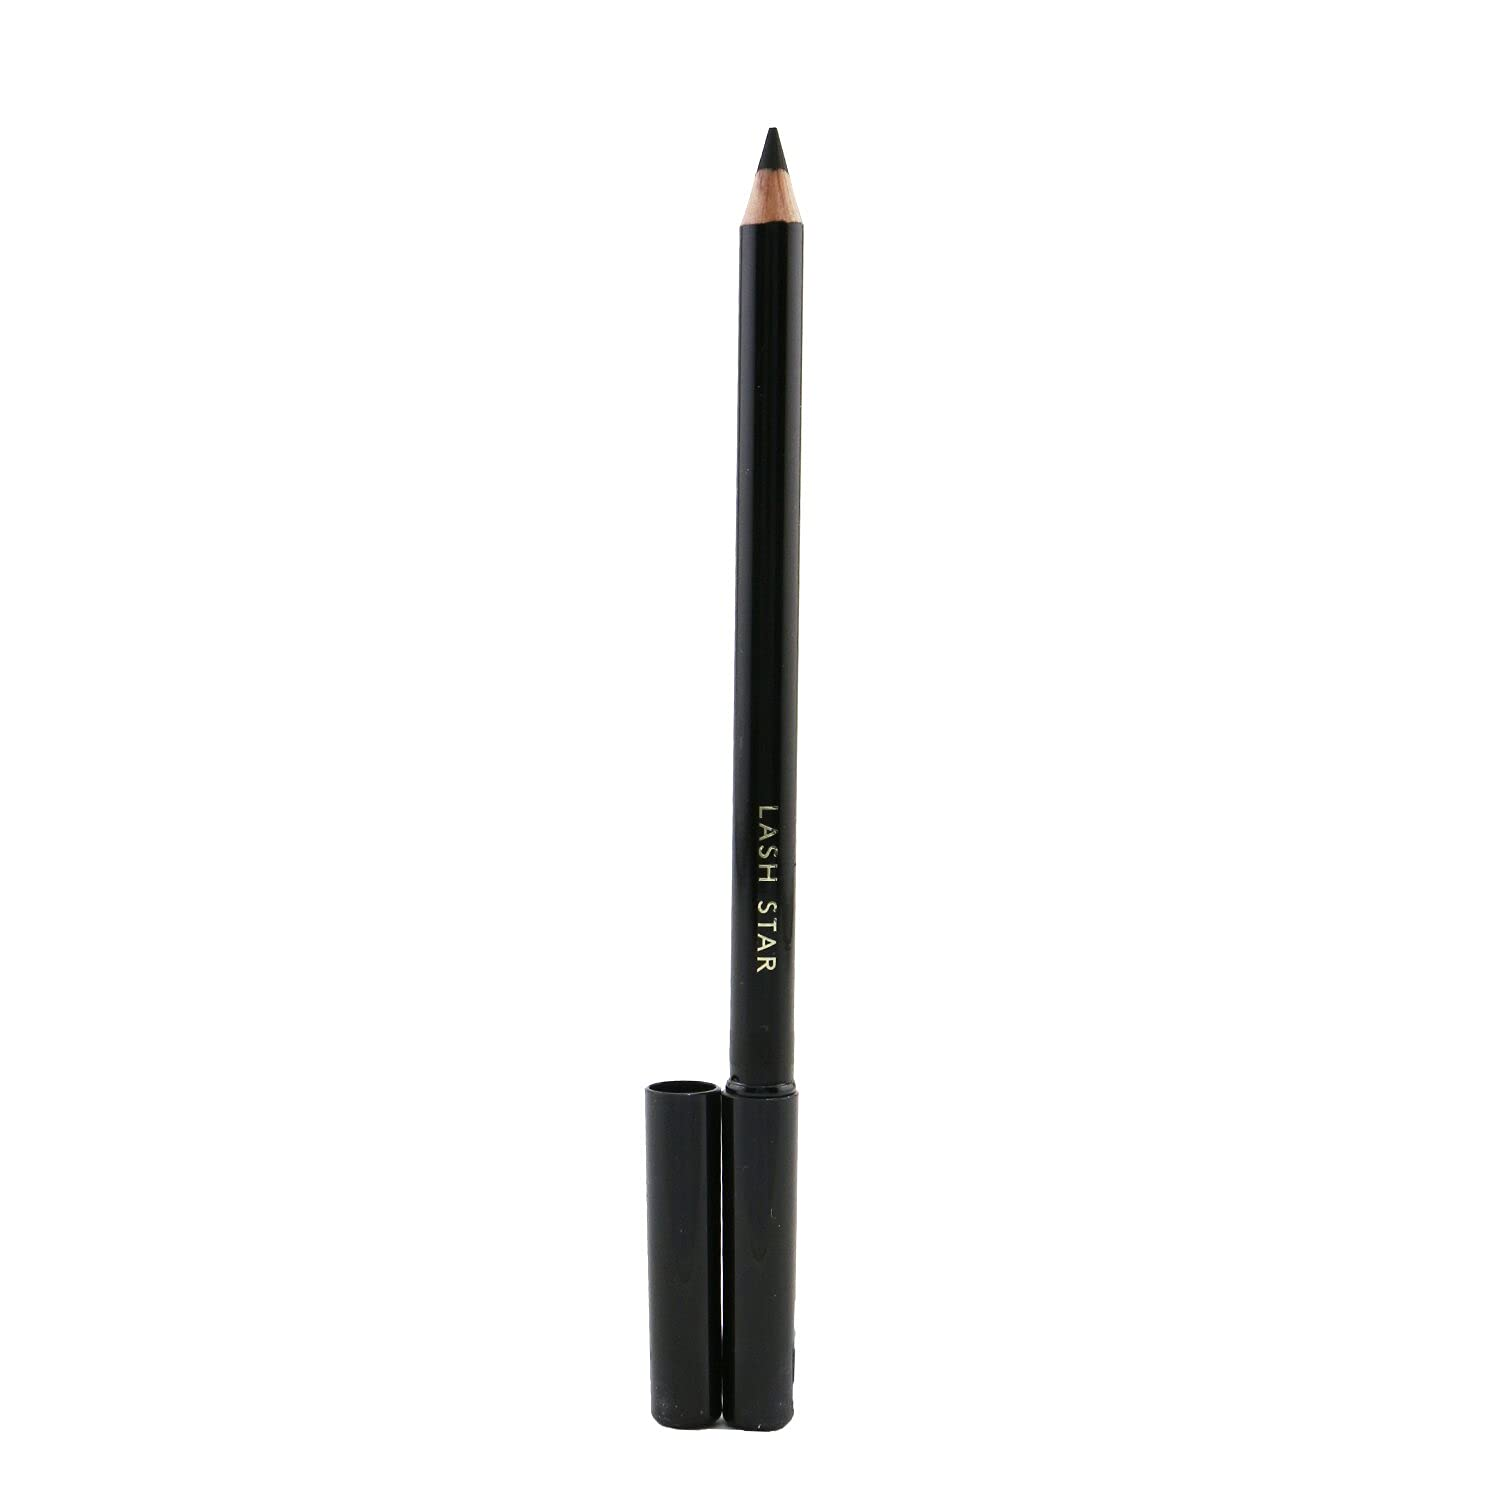 Lash Star - Pure Pigment Kohl Eyeliner Pencil # Black Infinite At the Max 69% OFF price of surprise